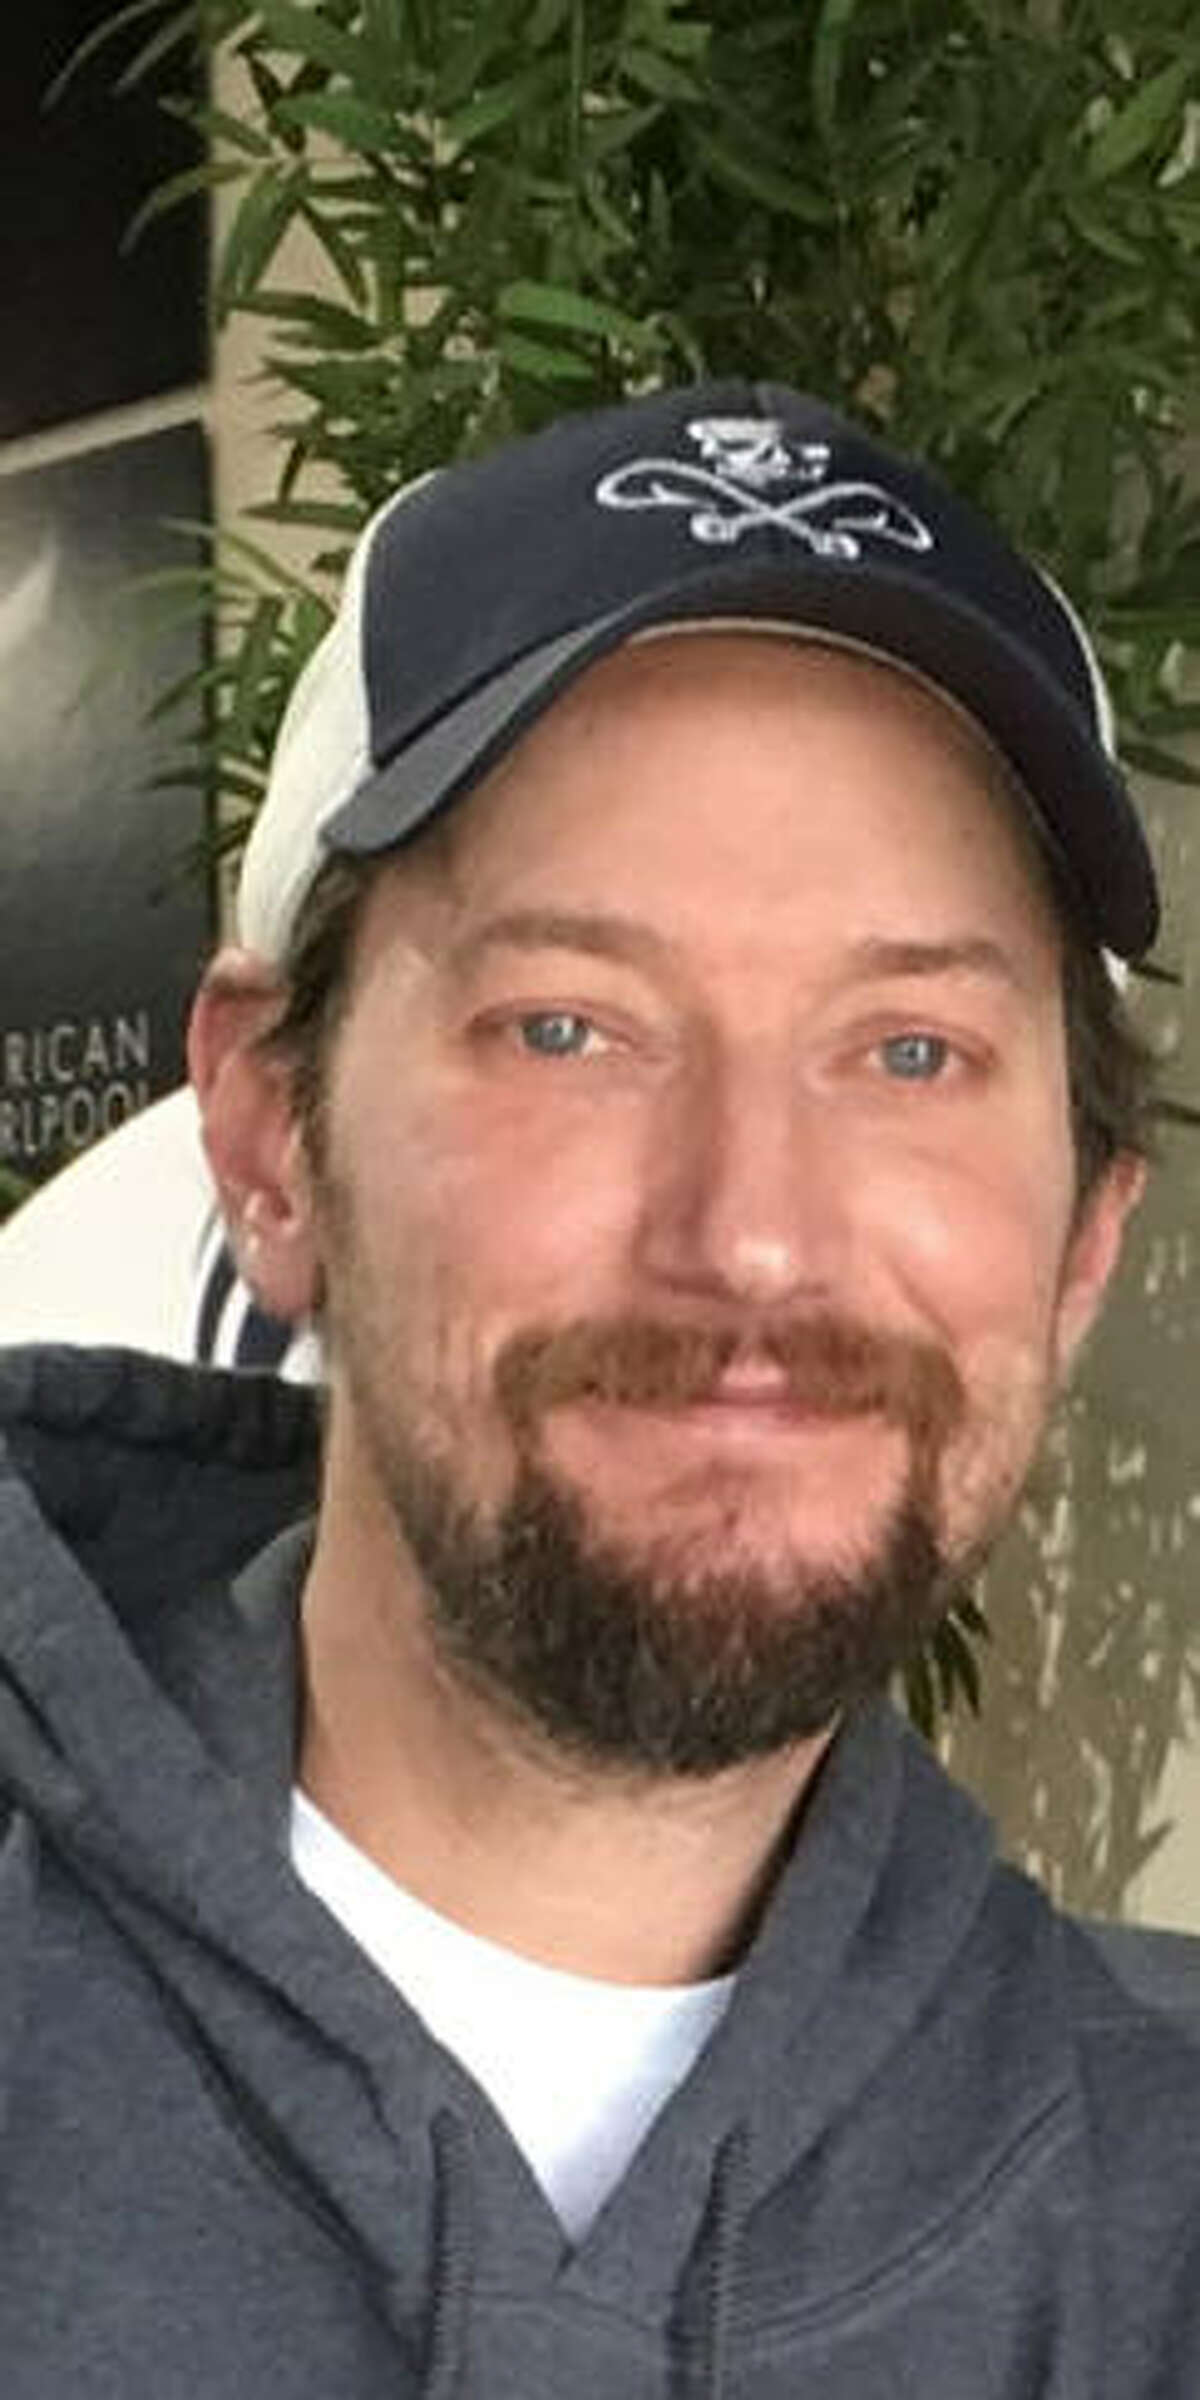 Matt Markiton, a Harvey's Hero, died April 11 following a heart and double lung transplant at Stanford Medical Centerin Palo Alto, California. Markiton, 43, was recognized with his wife, Audrey, by theWillow Fork Drainage District as Harvey's Heroes for organizing rescues of people stranded by floodwaters.